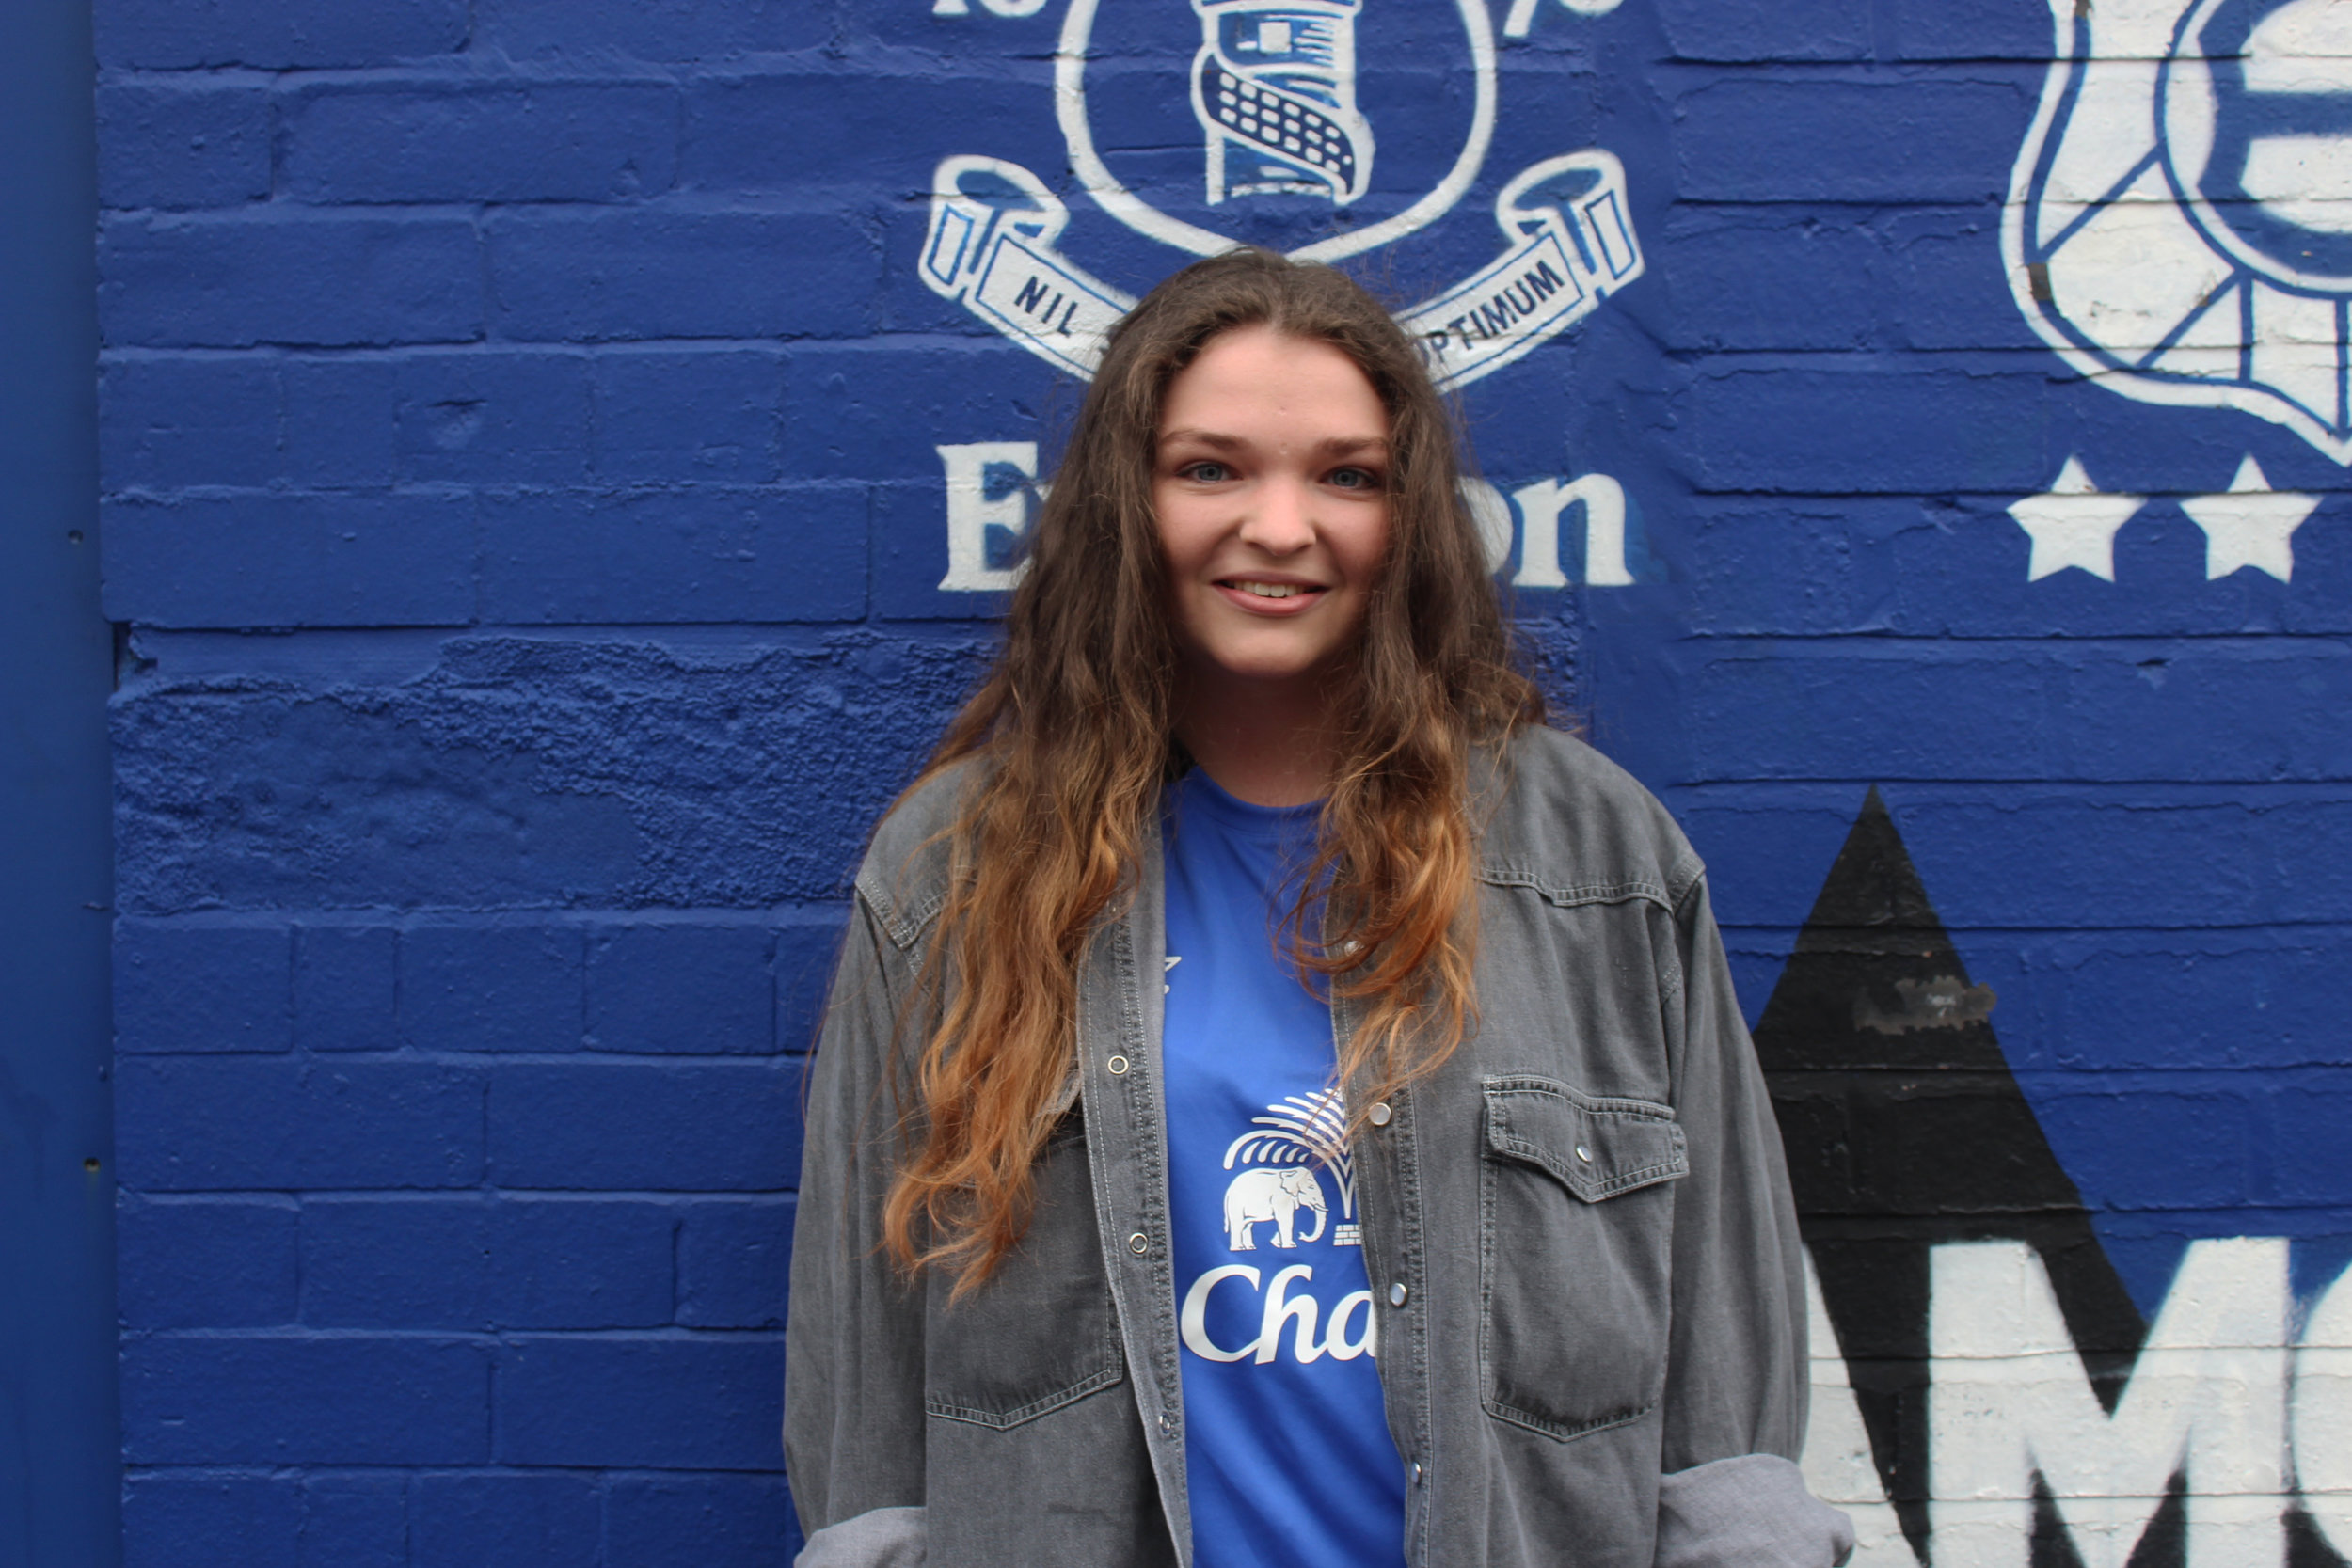 Everton Female Football Fan - This Fan Girl